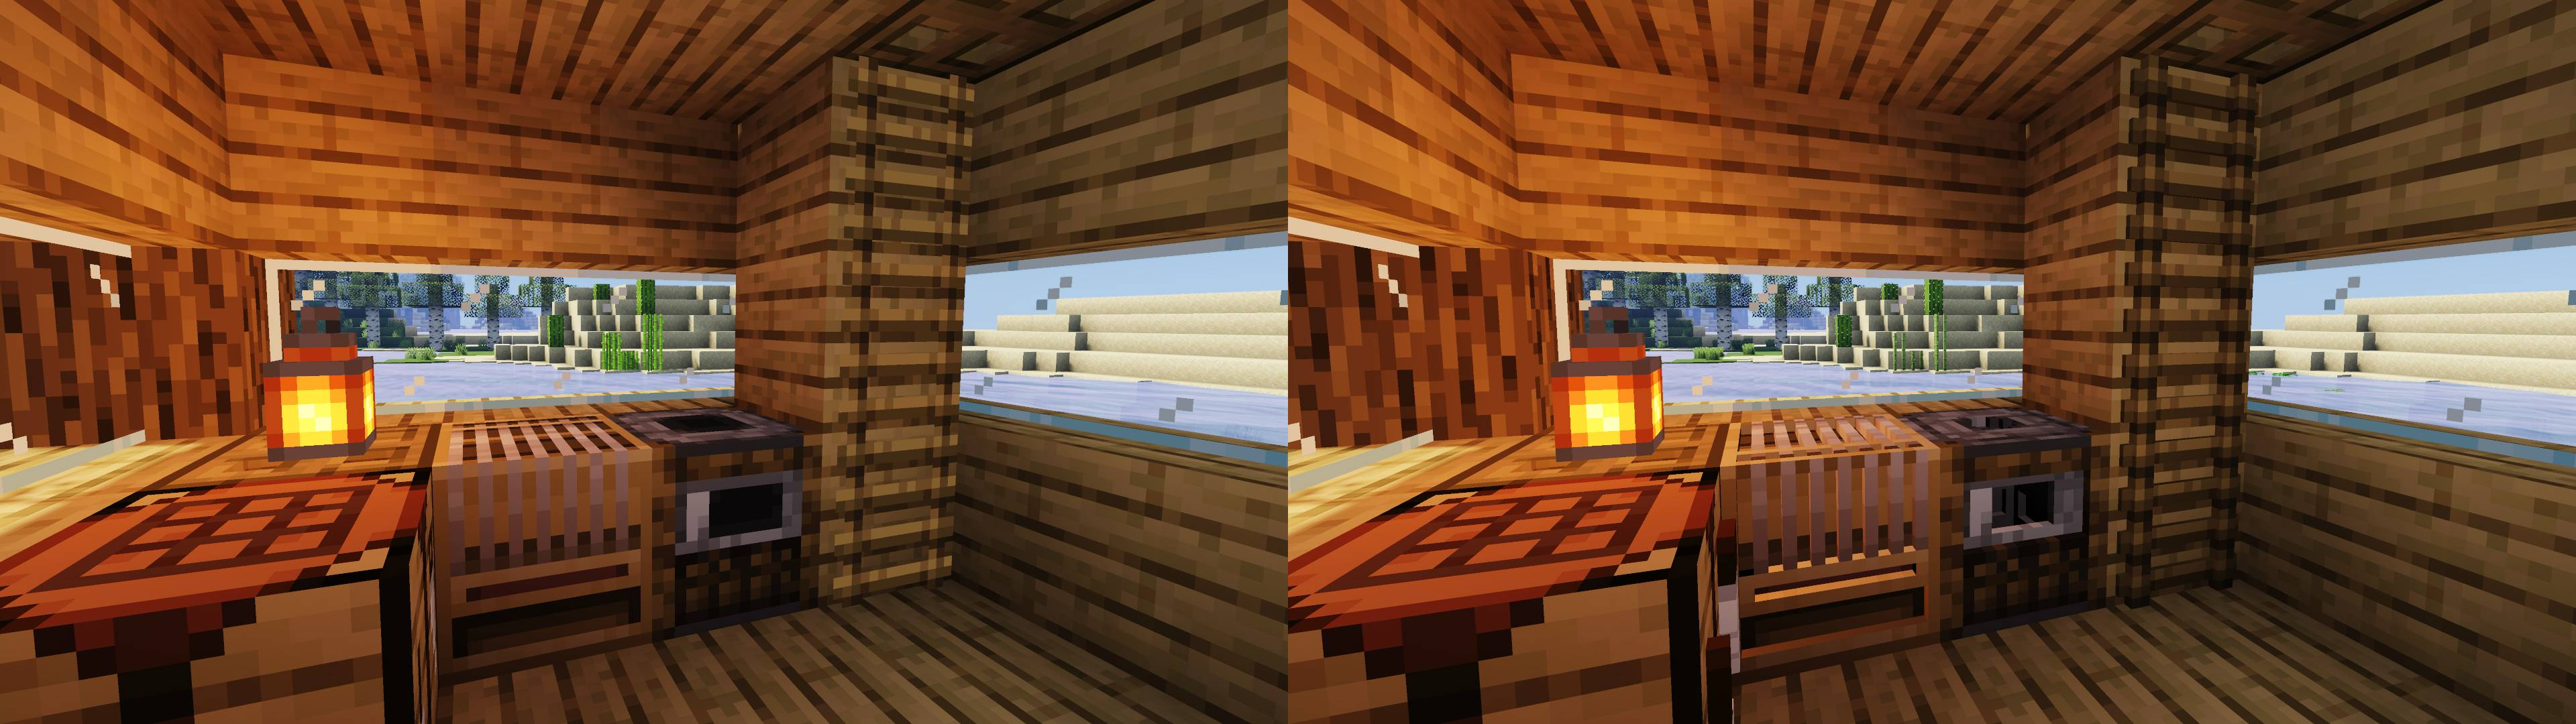 Aestheticism mod for minecraft 22